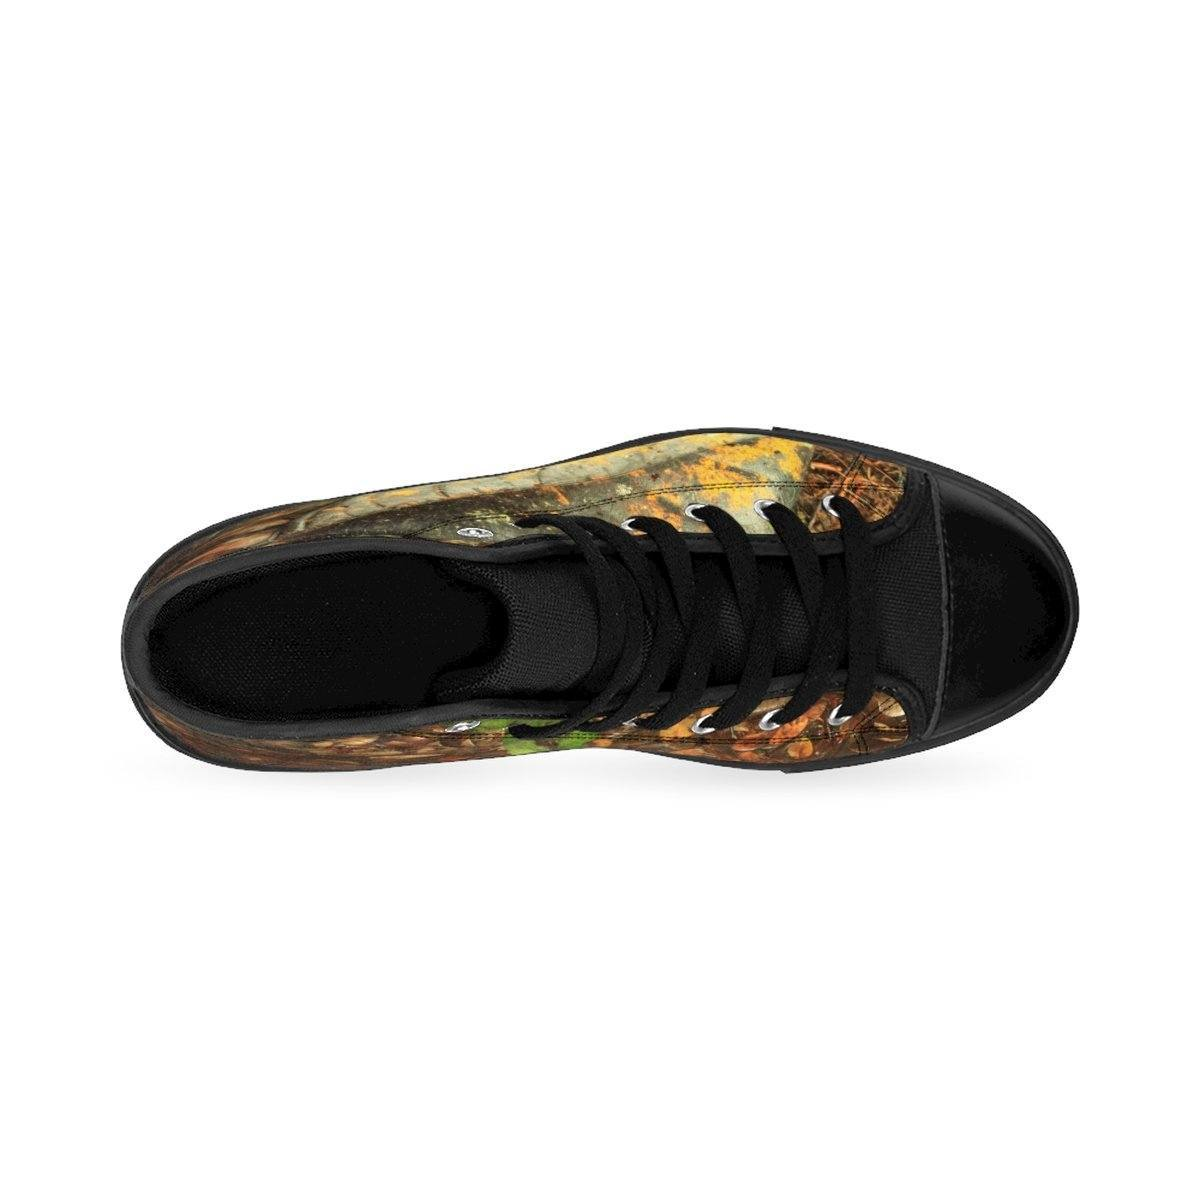 Women's High-top Sneakers - Leaves in Tradewinds trail - El Yunque rain forest PR Shoes Printify